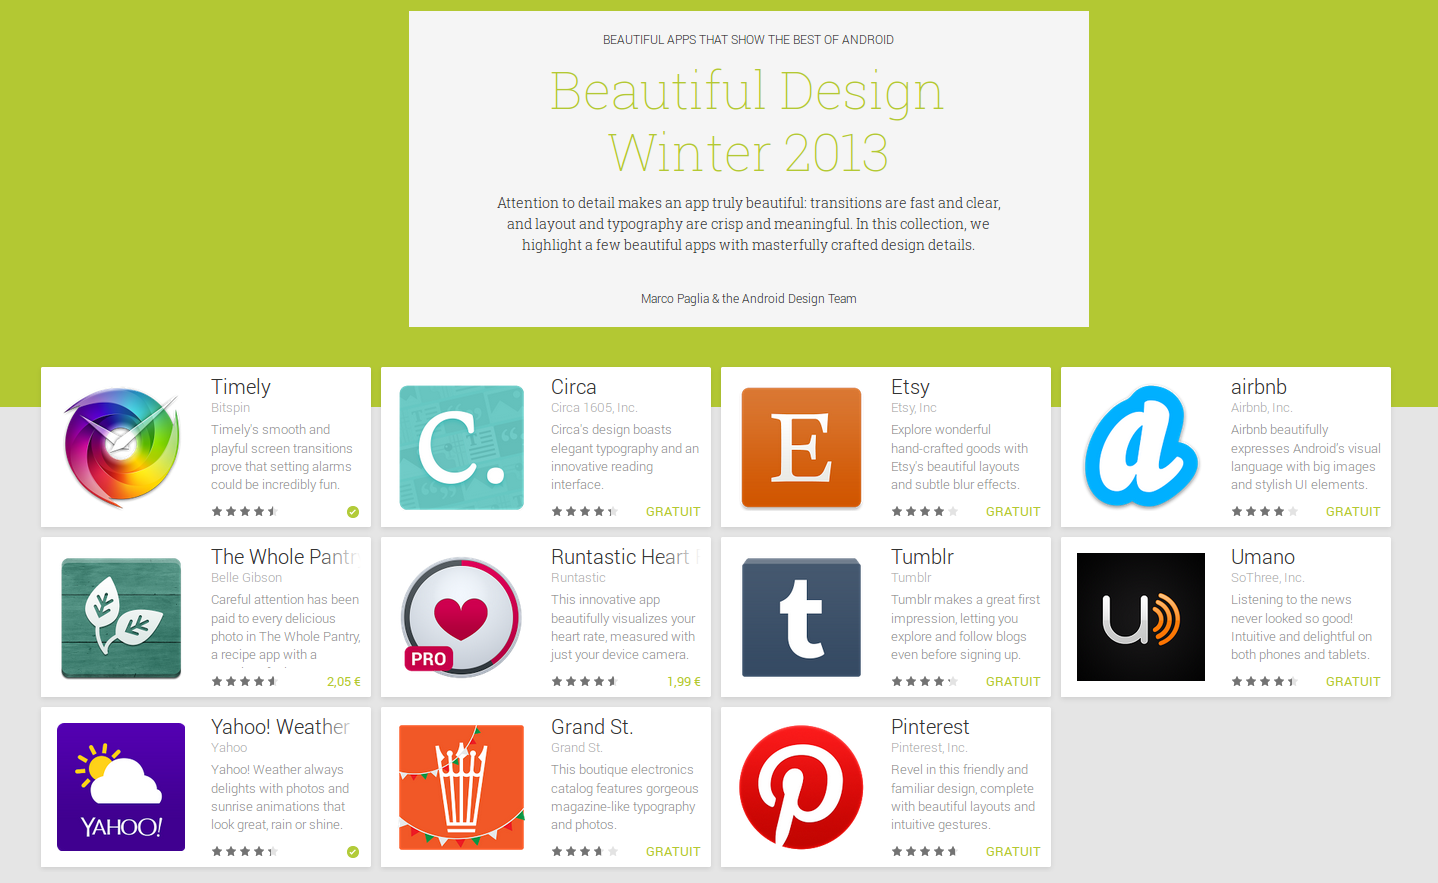 La collection d'application Android Beautiful Design Winter 2013